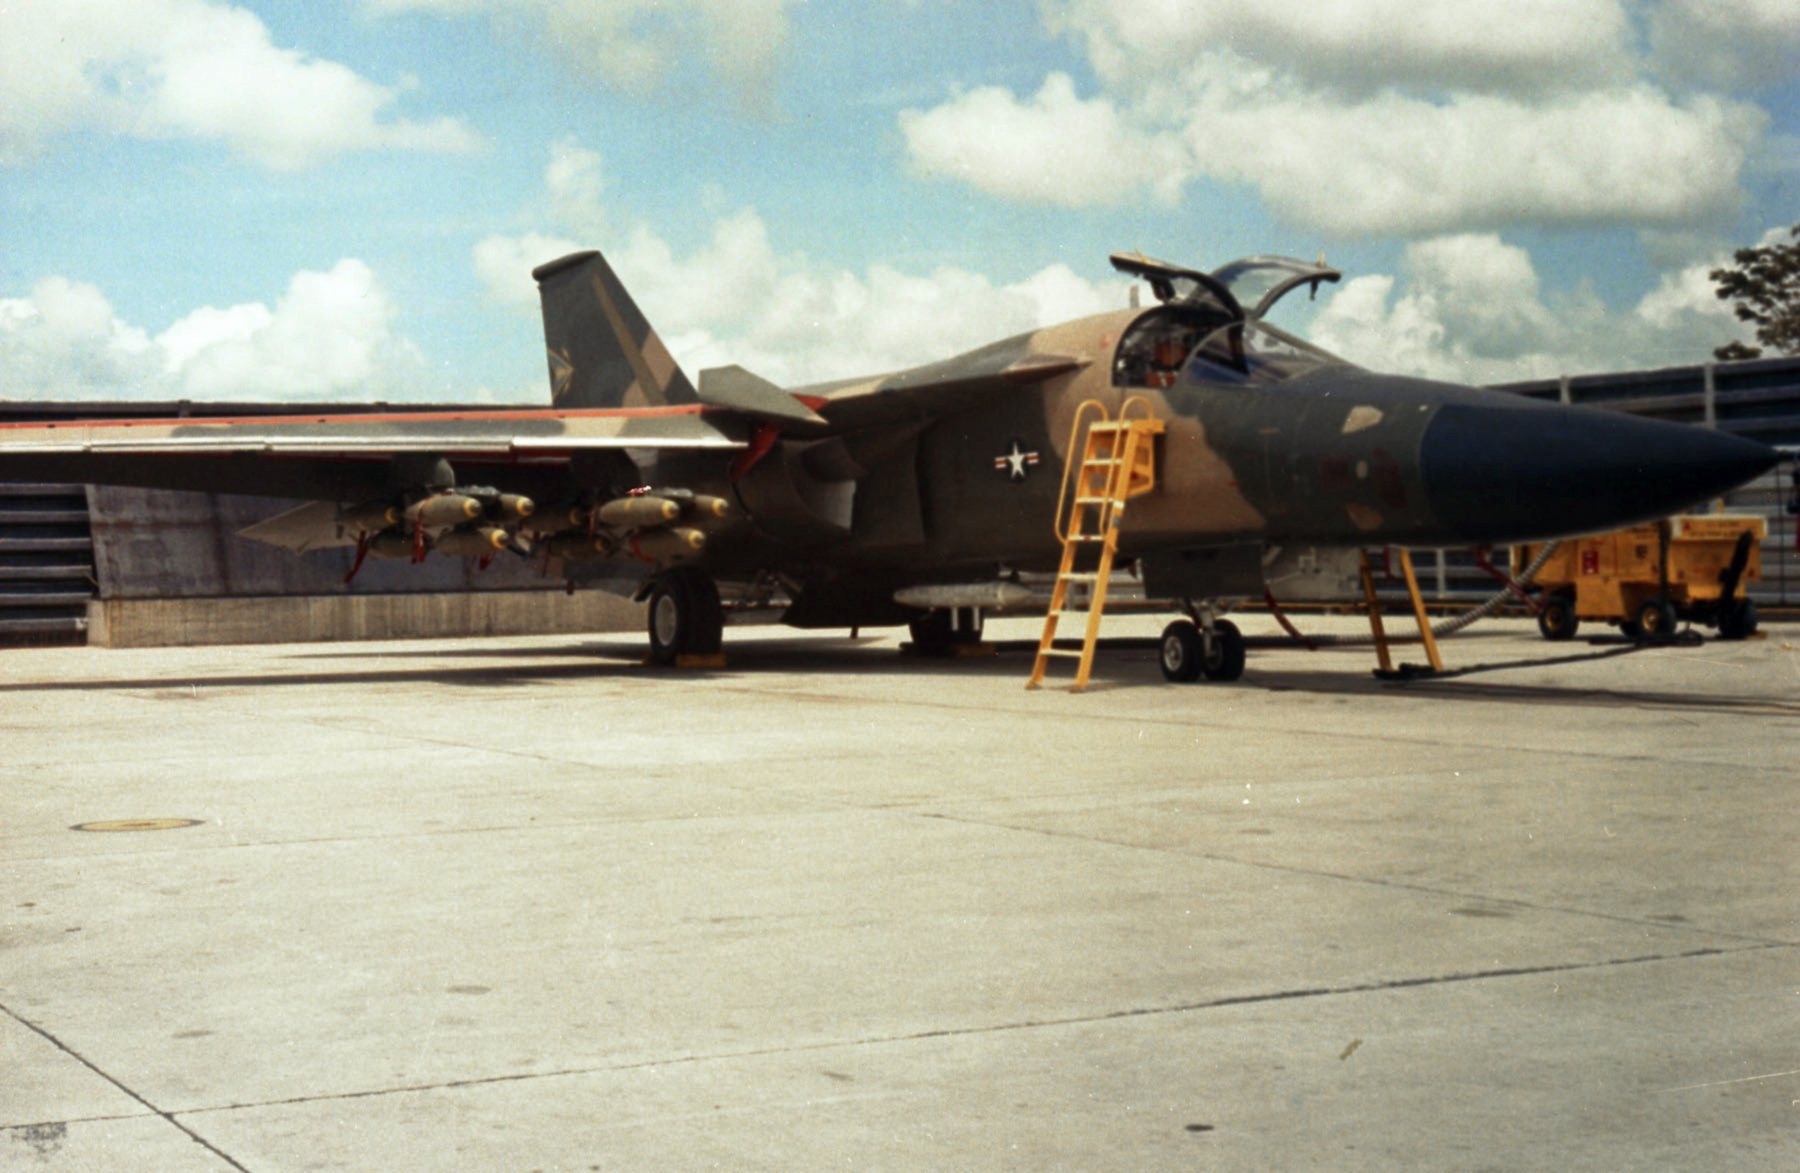 File:F-111A 428th TFS bombed up at Takhli RTAFB 1968.jpg